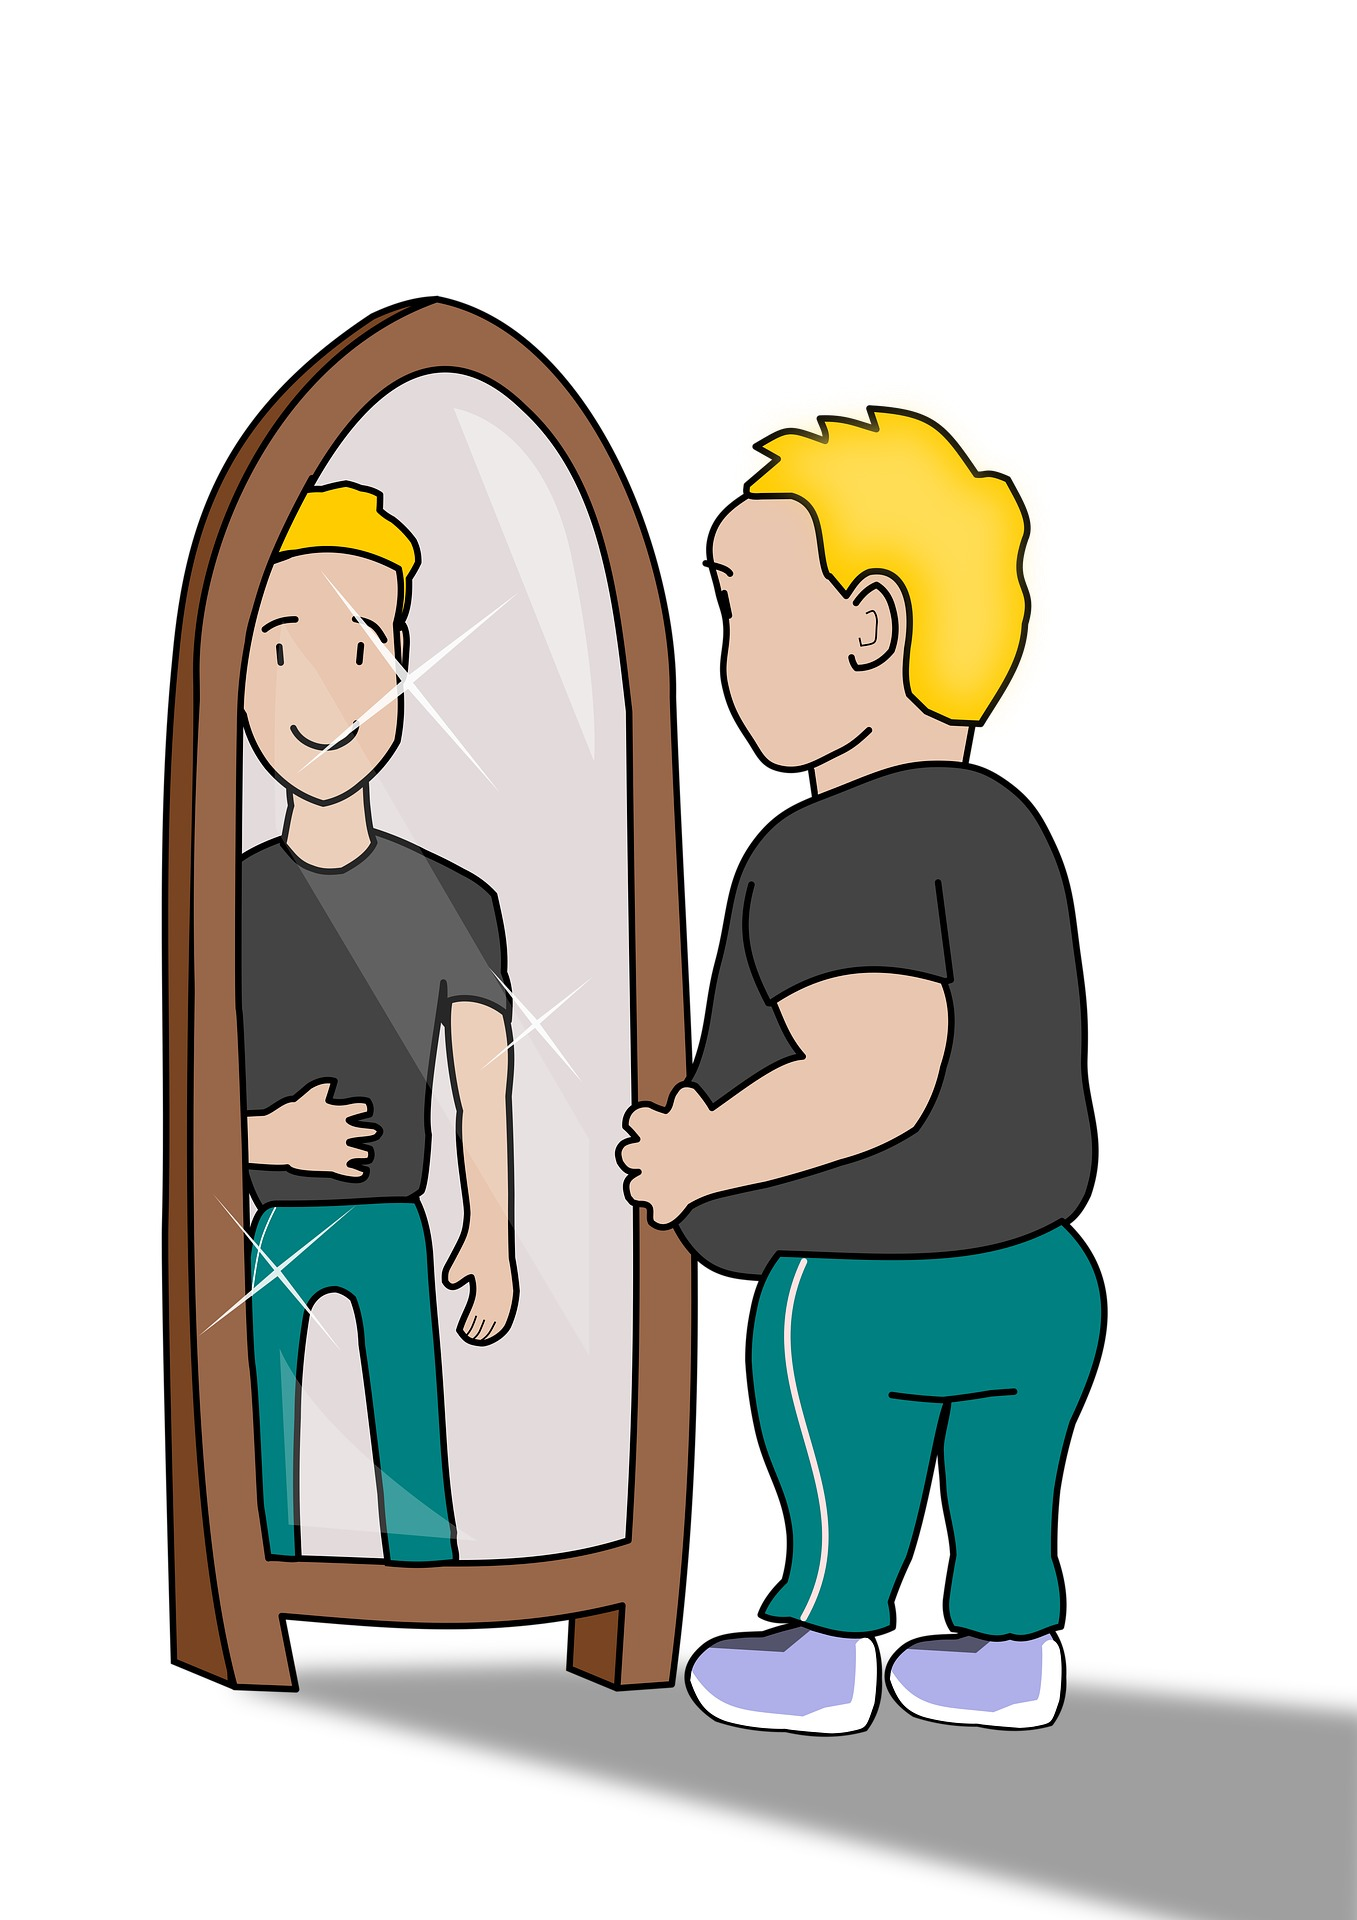 Cartoon of a man looking in the mirror seeing a slimmer version of himself